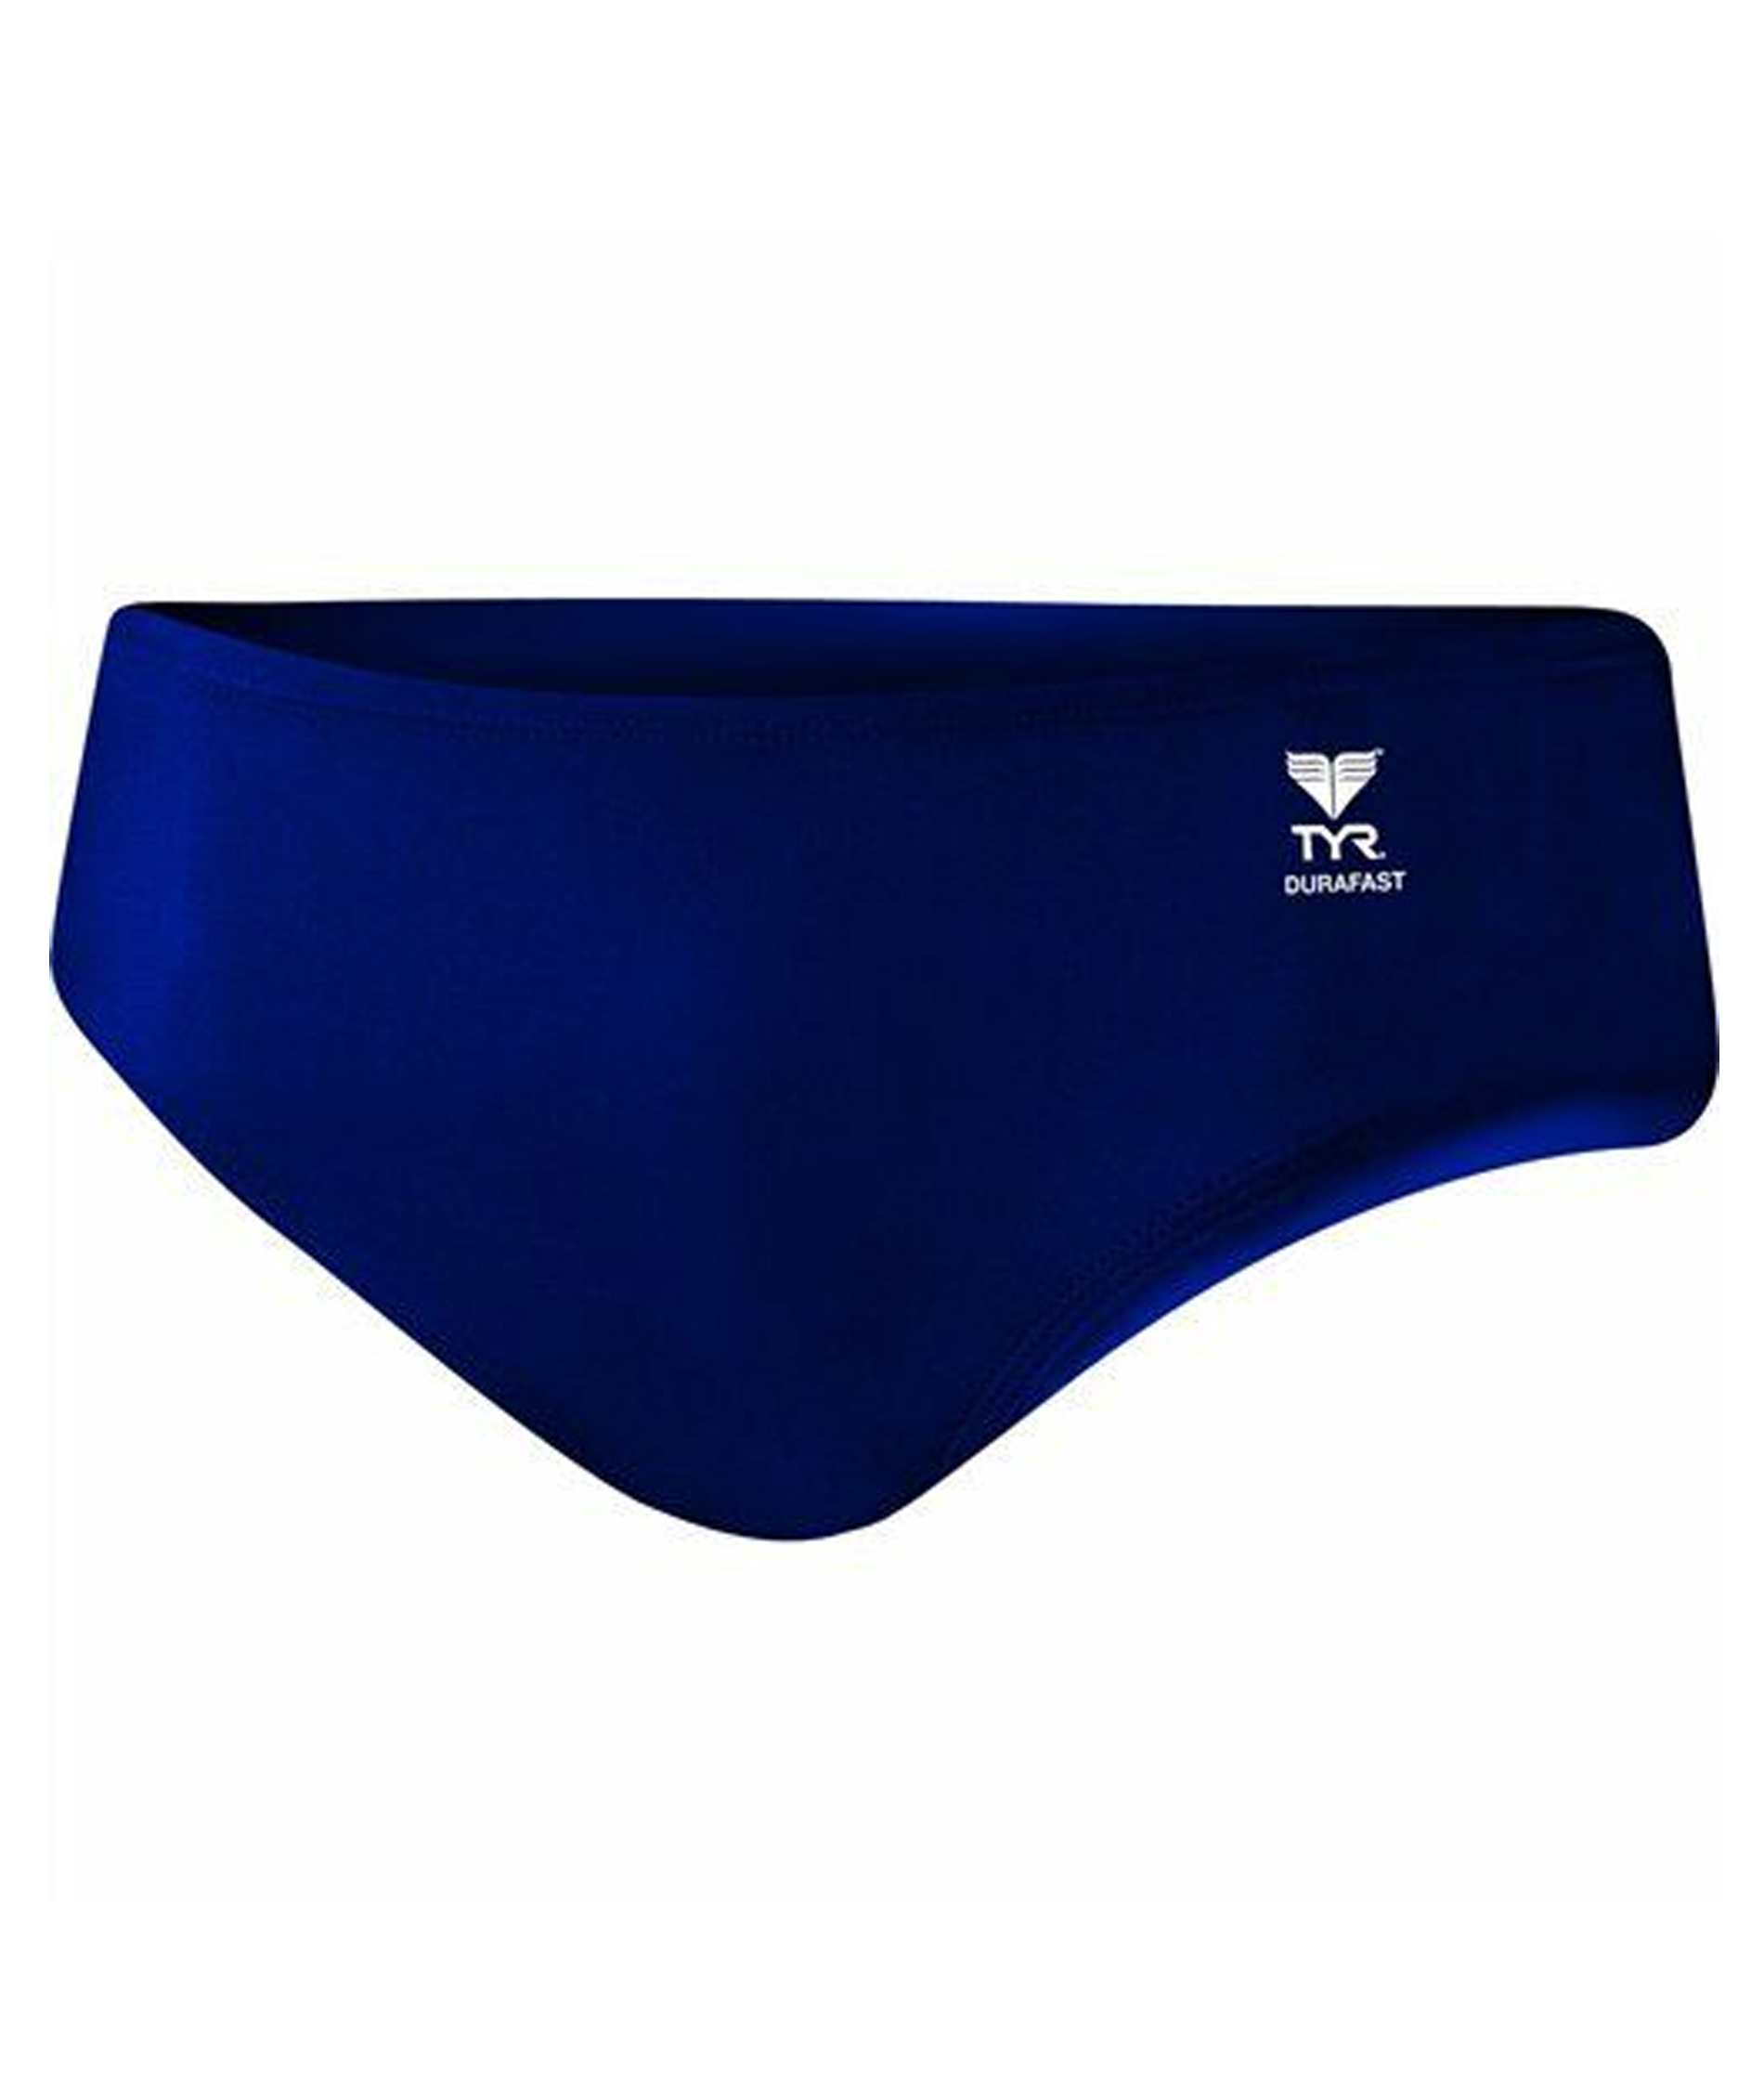 TYR Mens Durafast Elite Solid Racer Brief - Navy